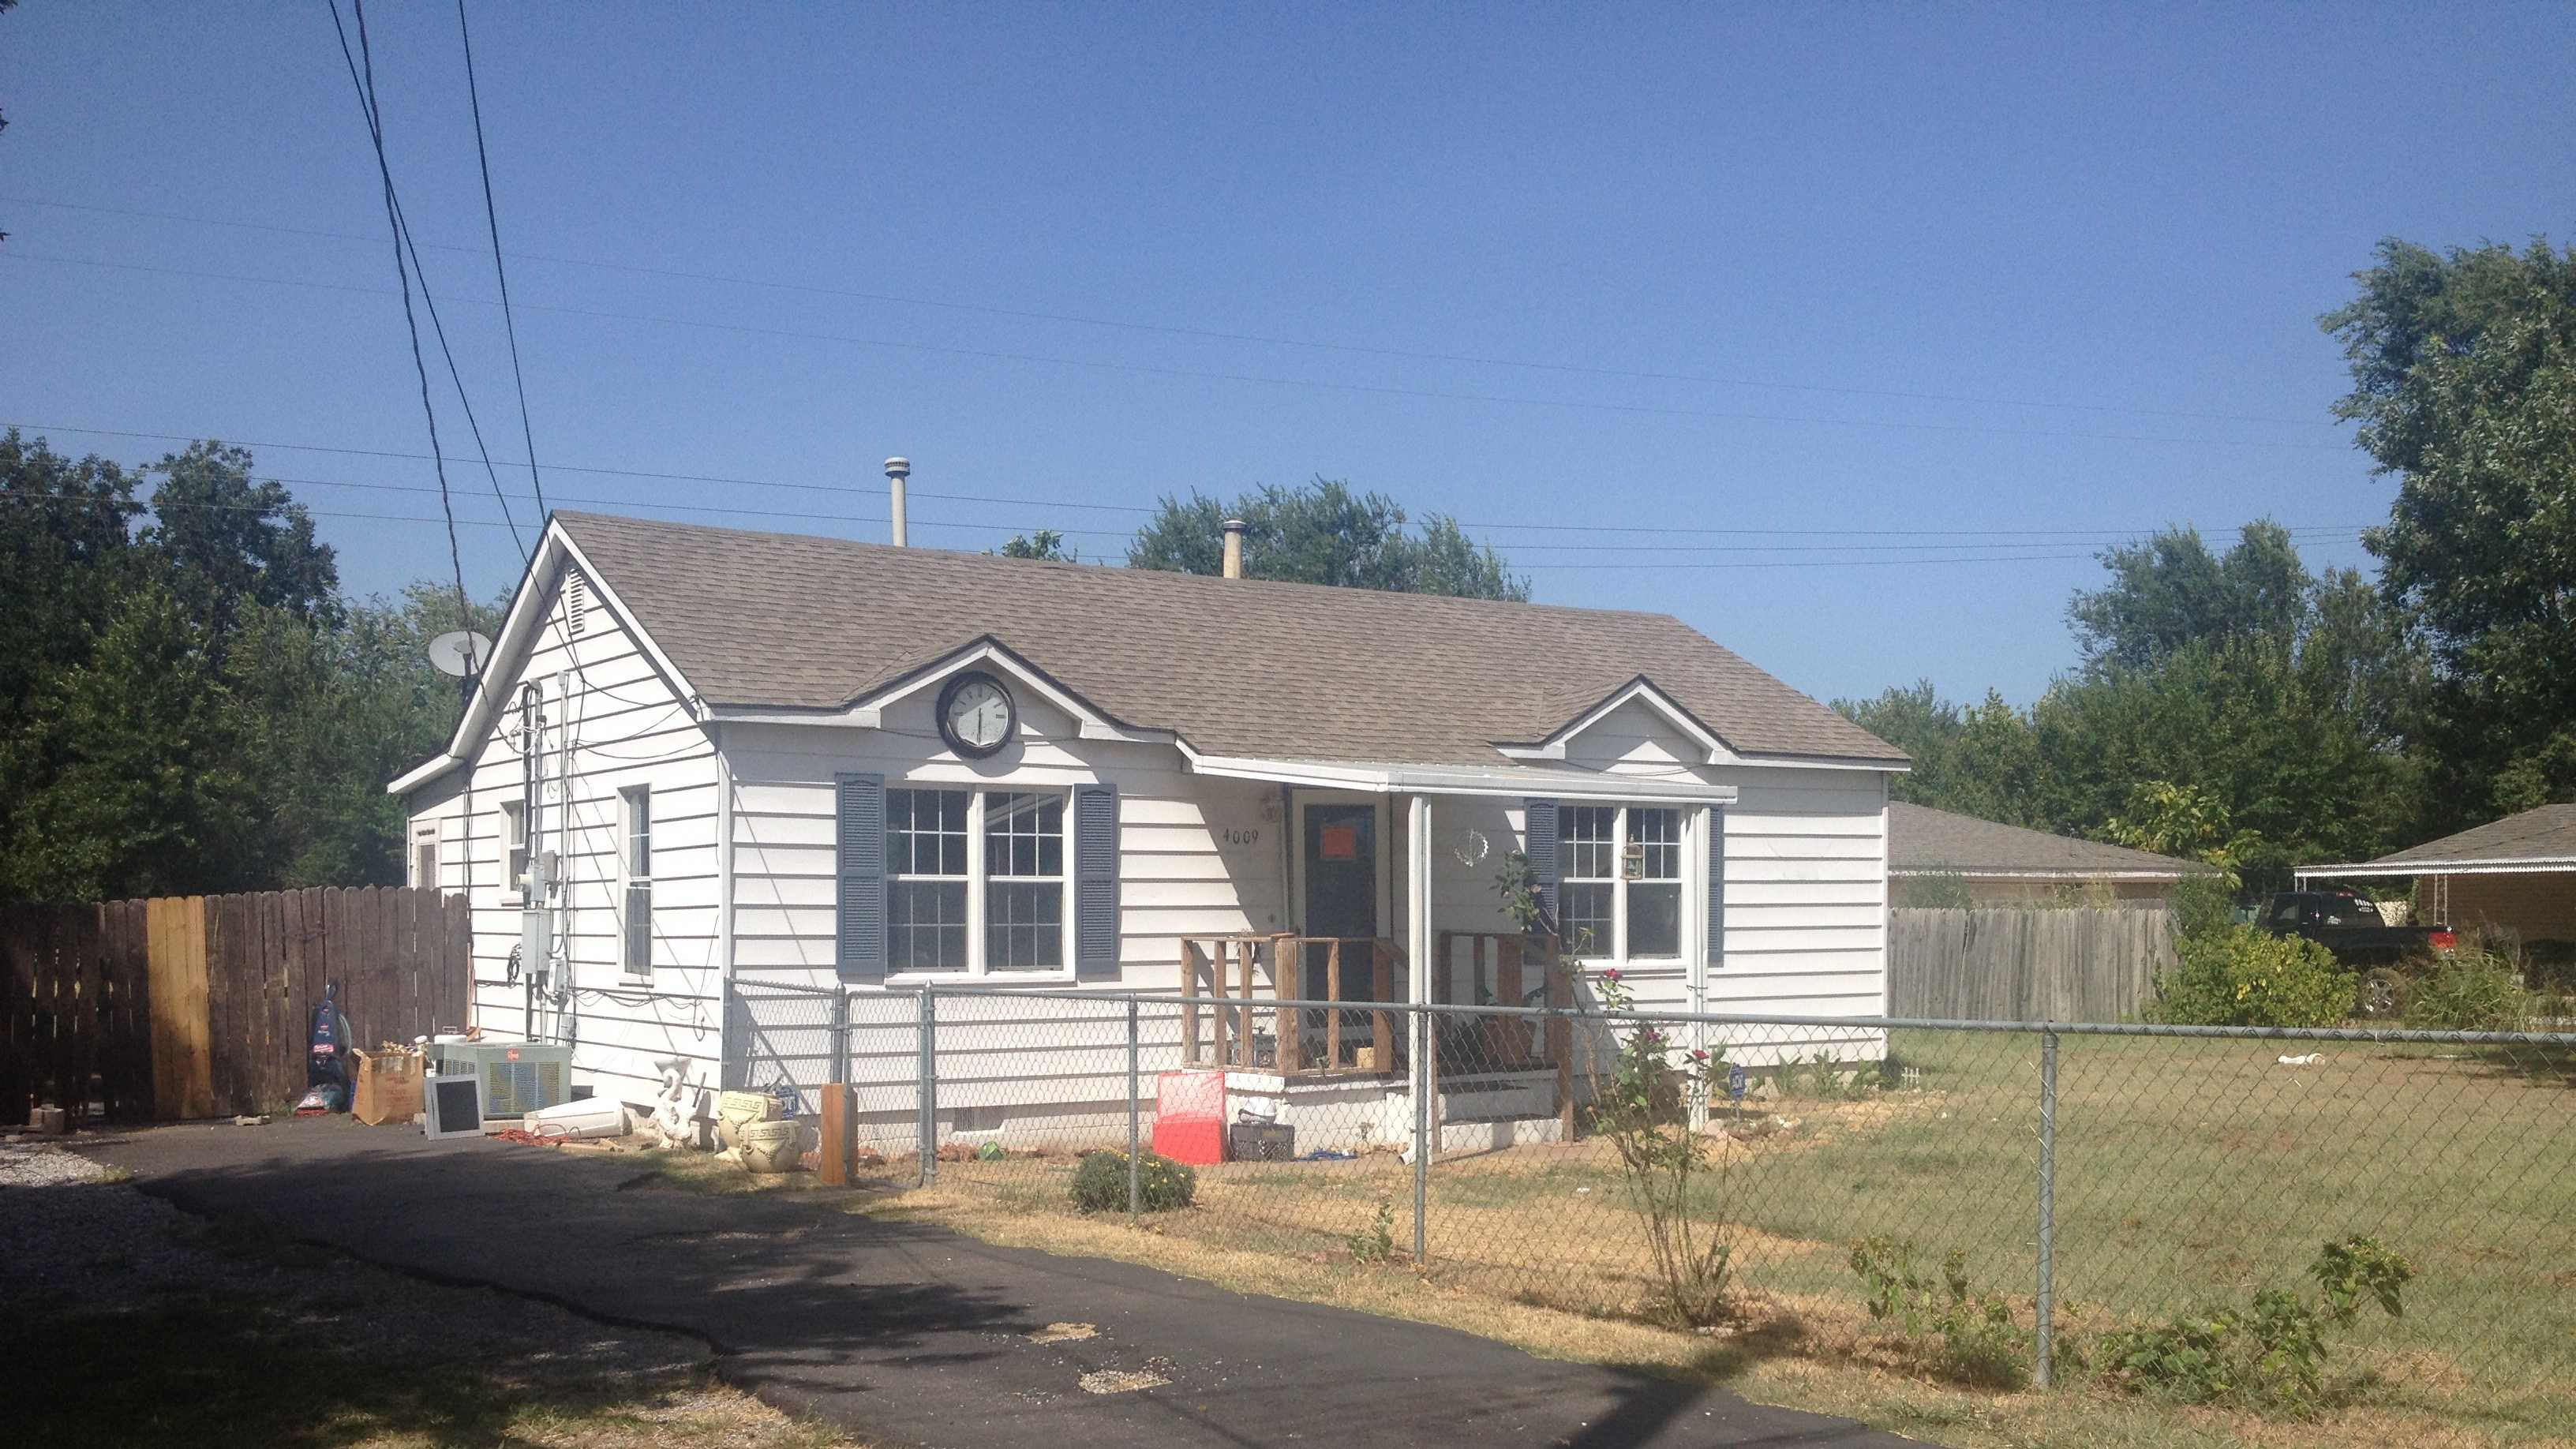 Del City rent house at center of conflict